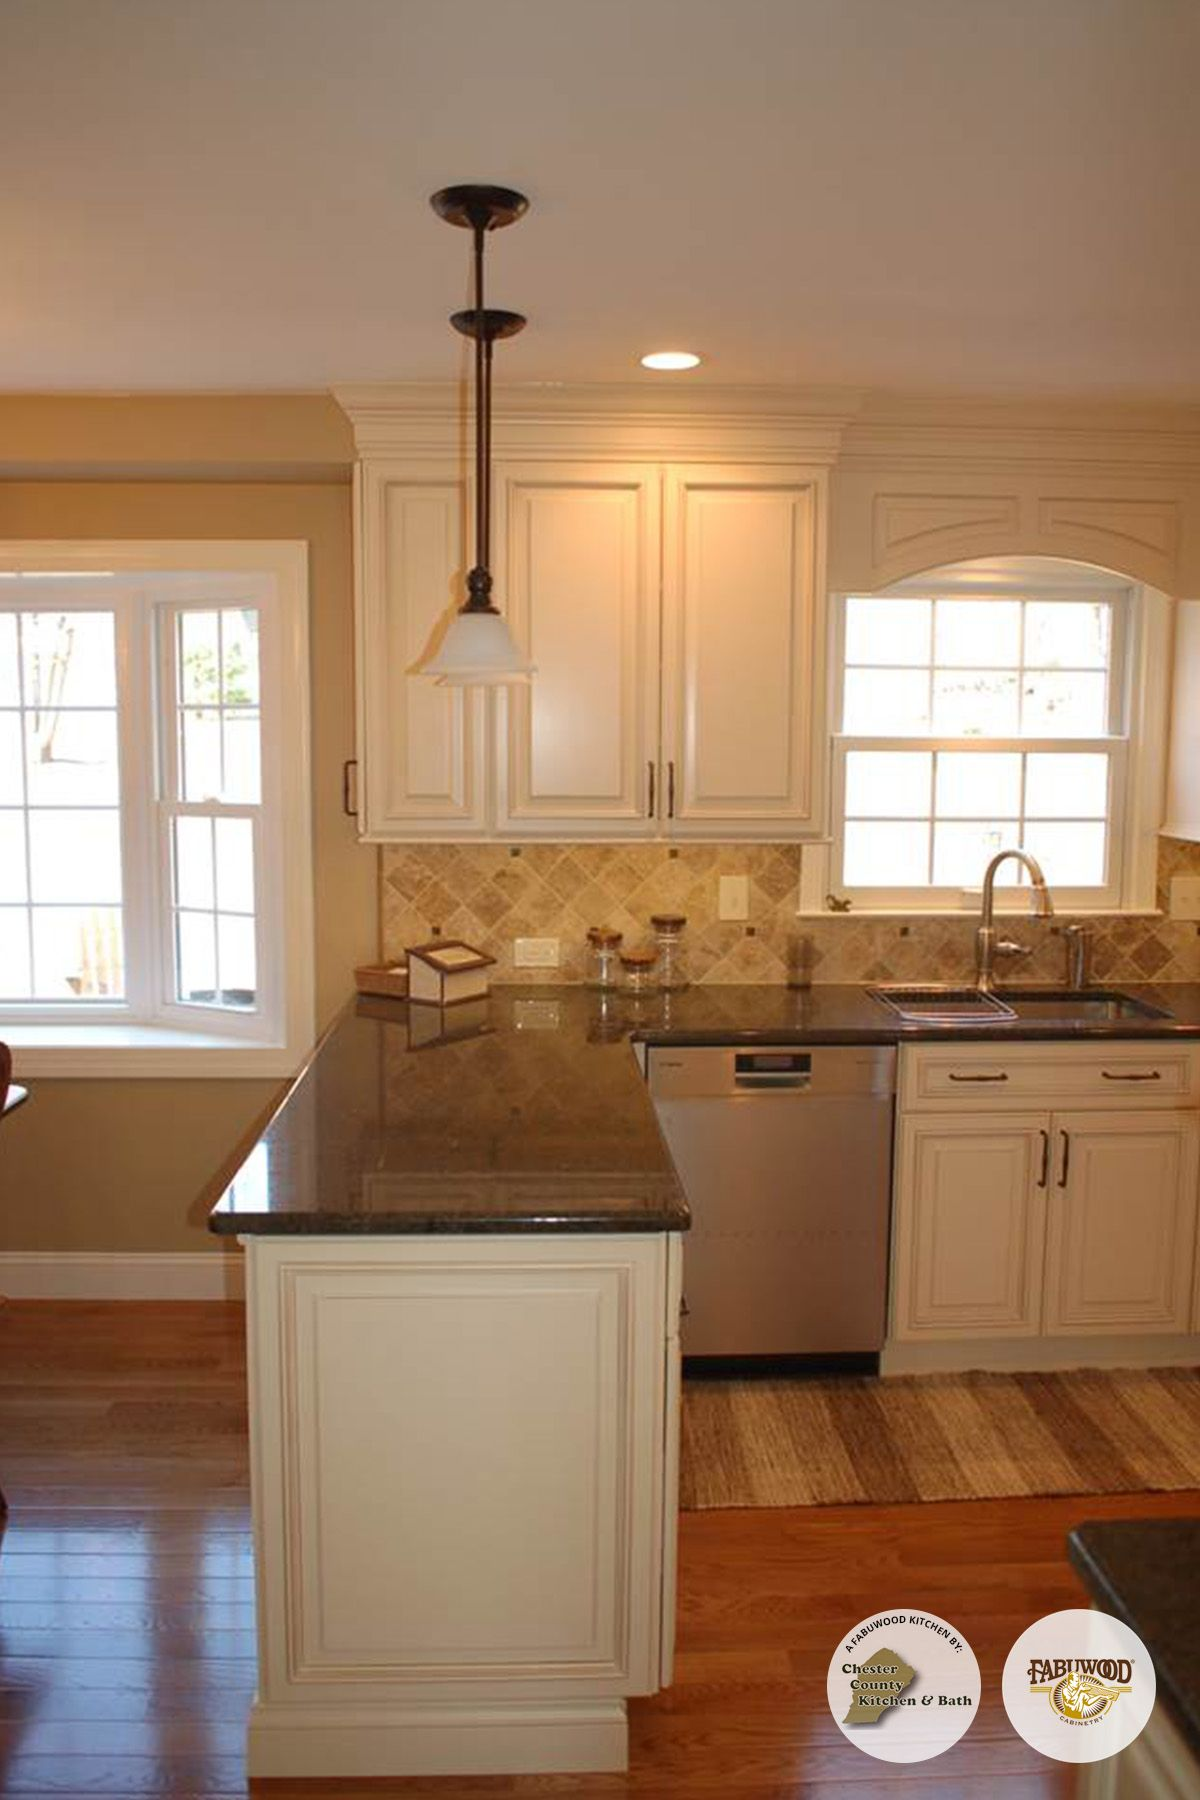 Another View Of The Classic Wellington Cabinets In Ivory Fabuwood Classic Kitchen Remodel Small Open Kitchen And Living Room Kitchen Redecorating